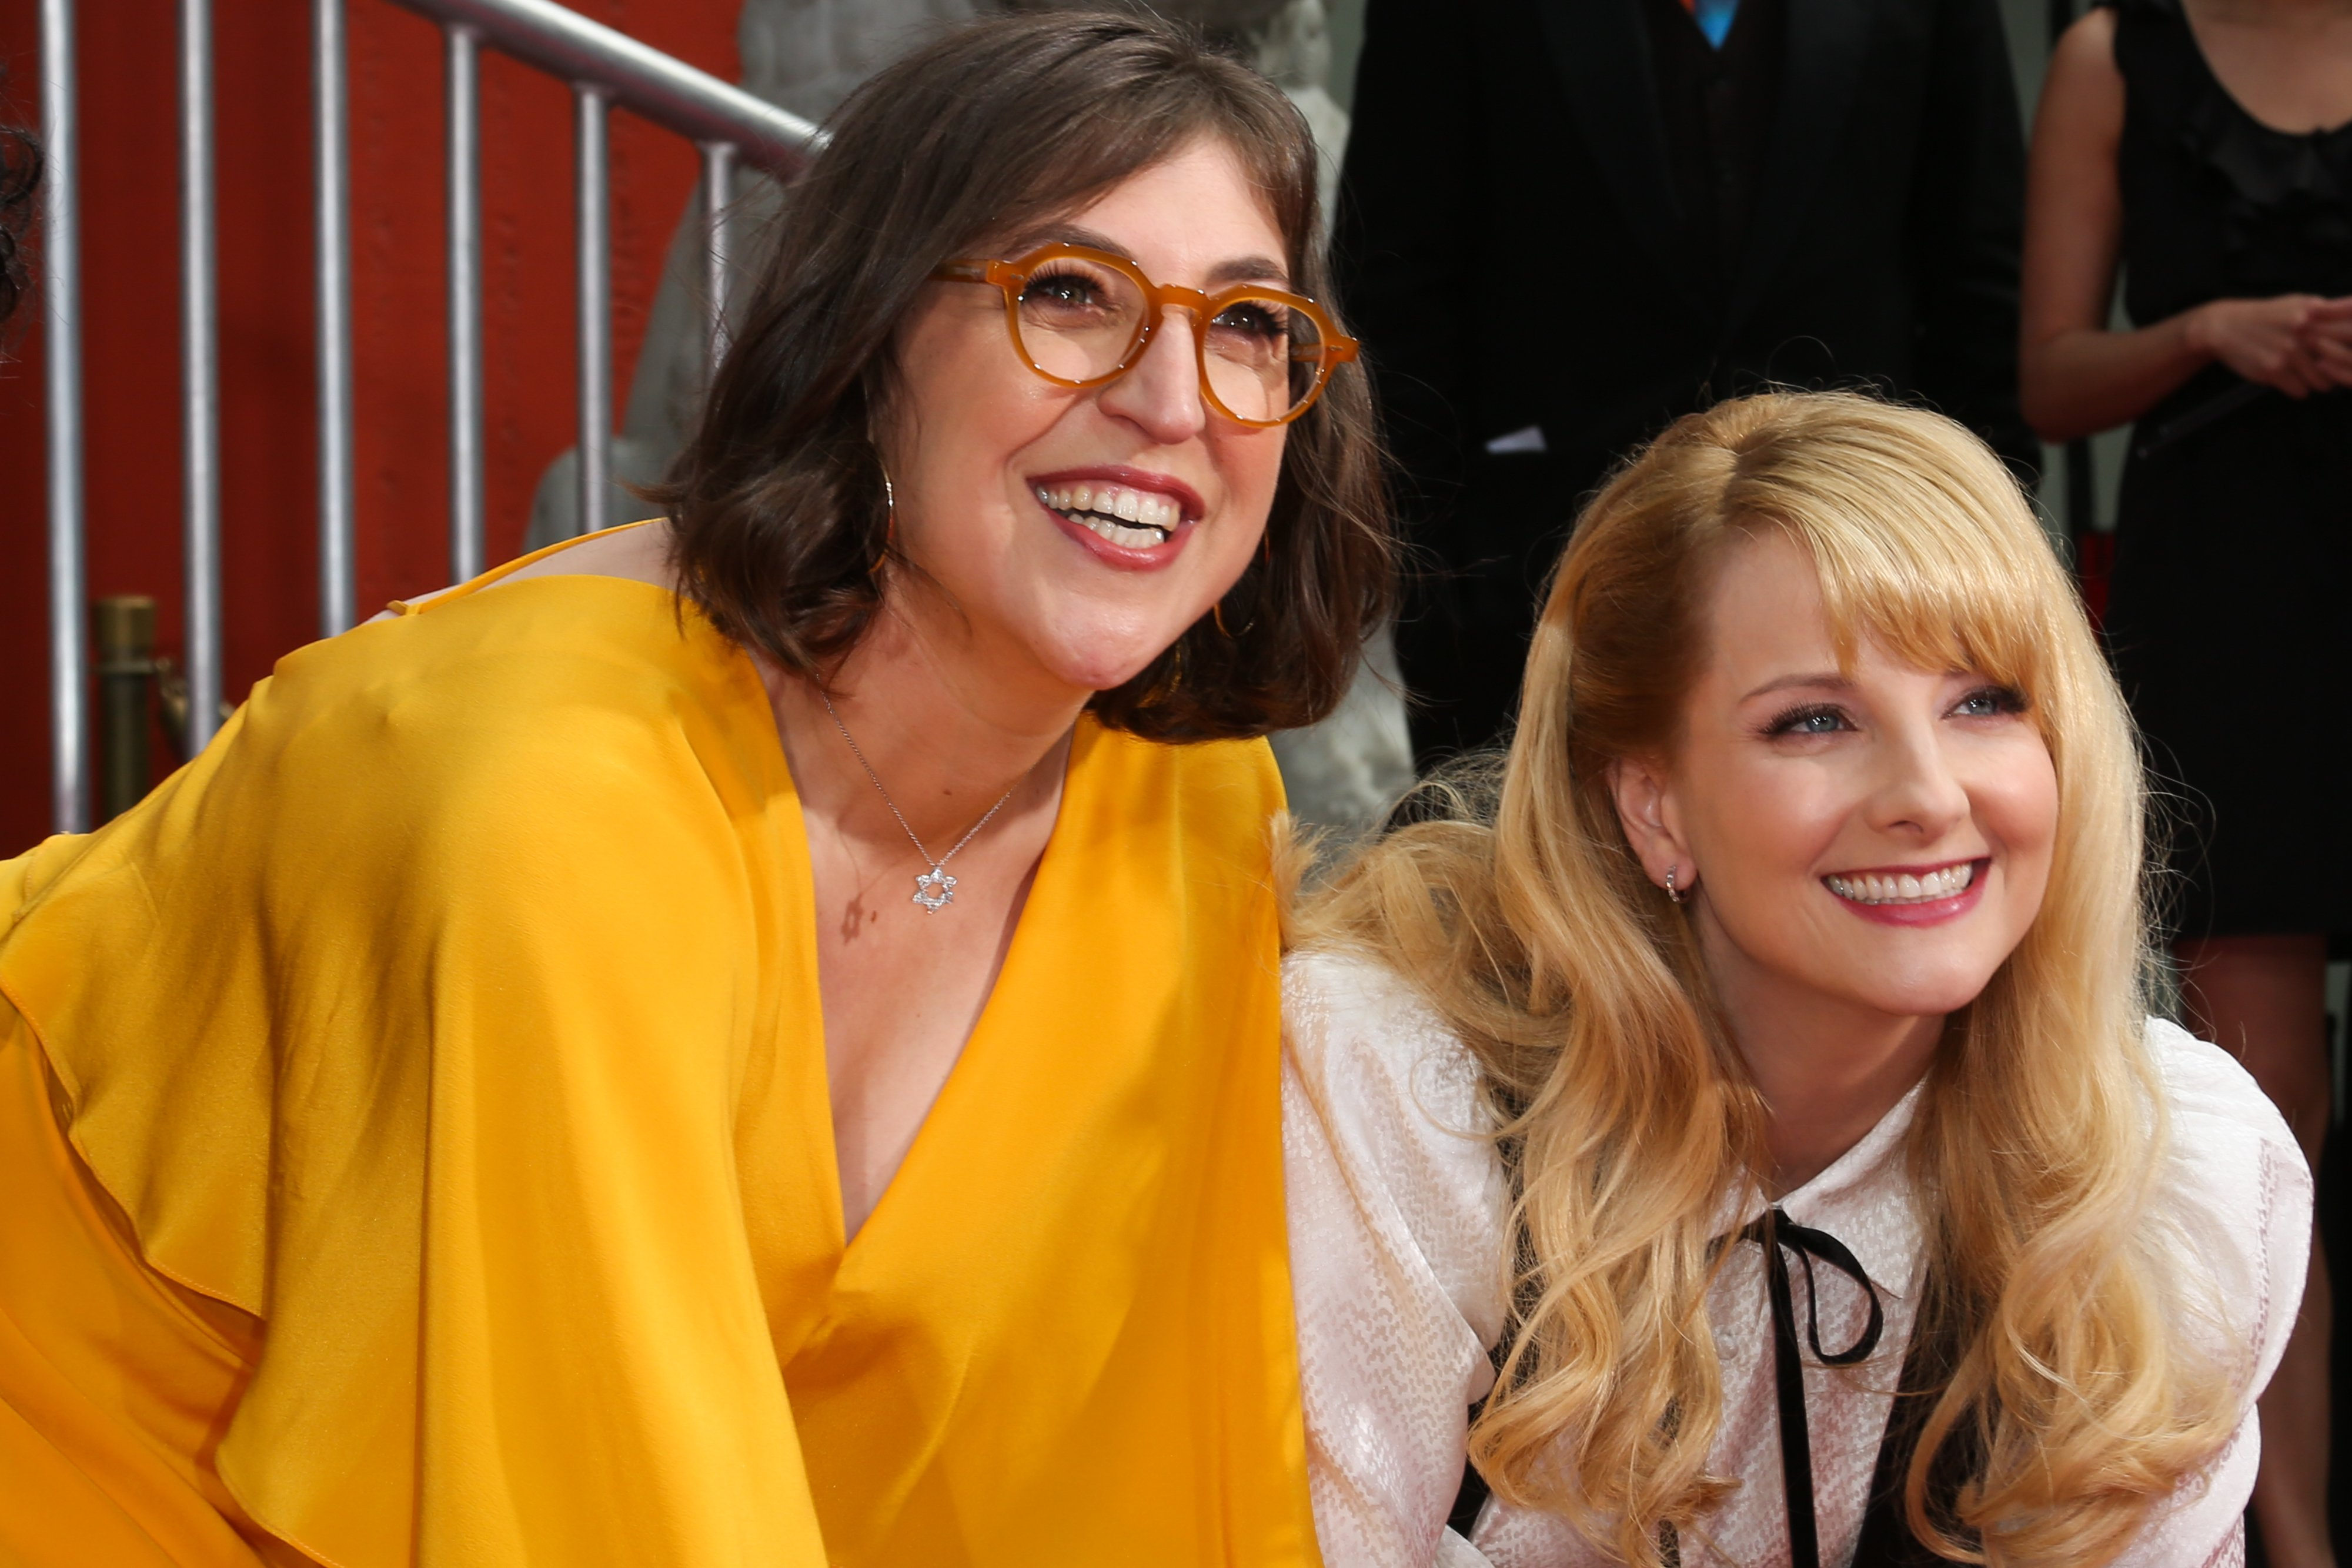 """Mayim Bialk (Left) and Melissa Rauch (Right) at """"Big Bang Theory's"""" handprint ceremony in Hollywood, May 2019. 